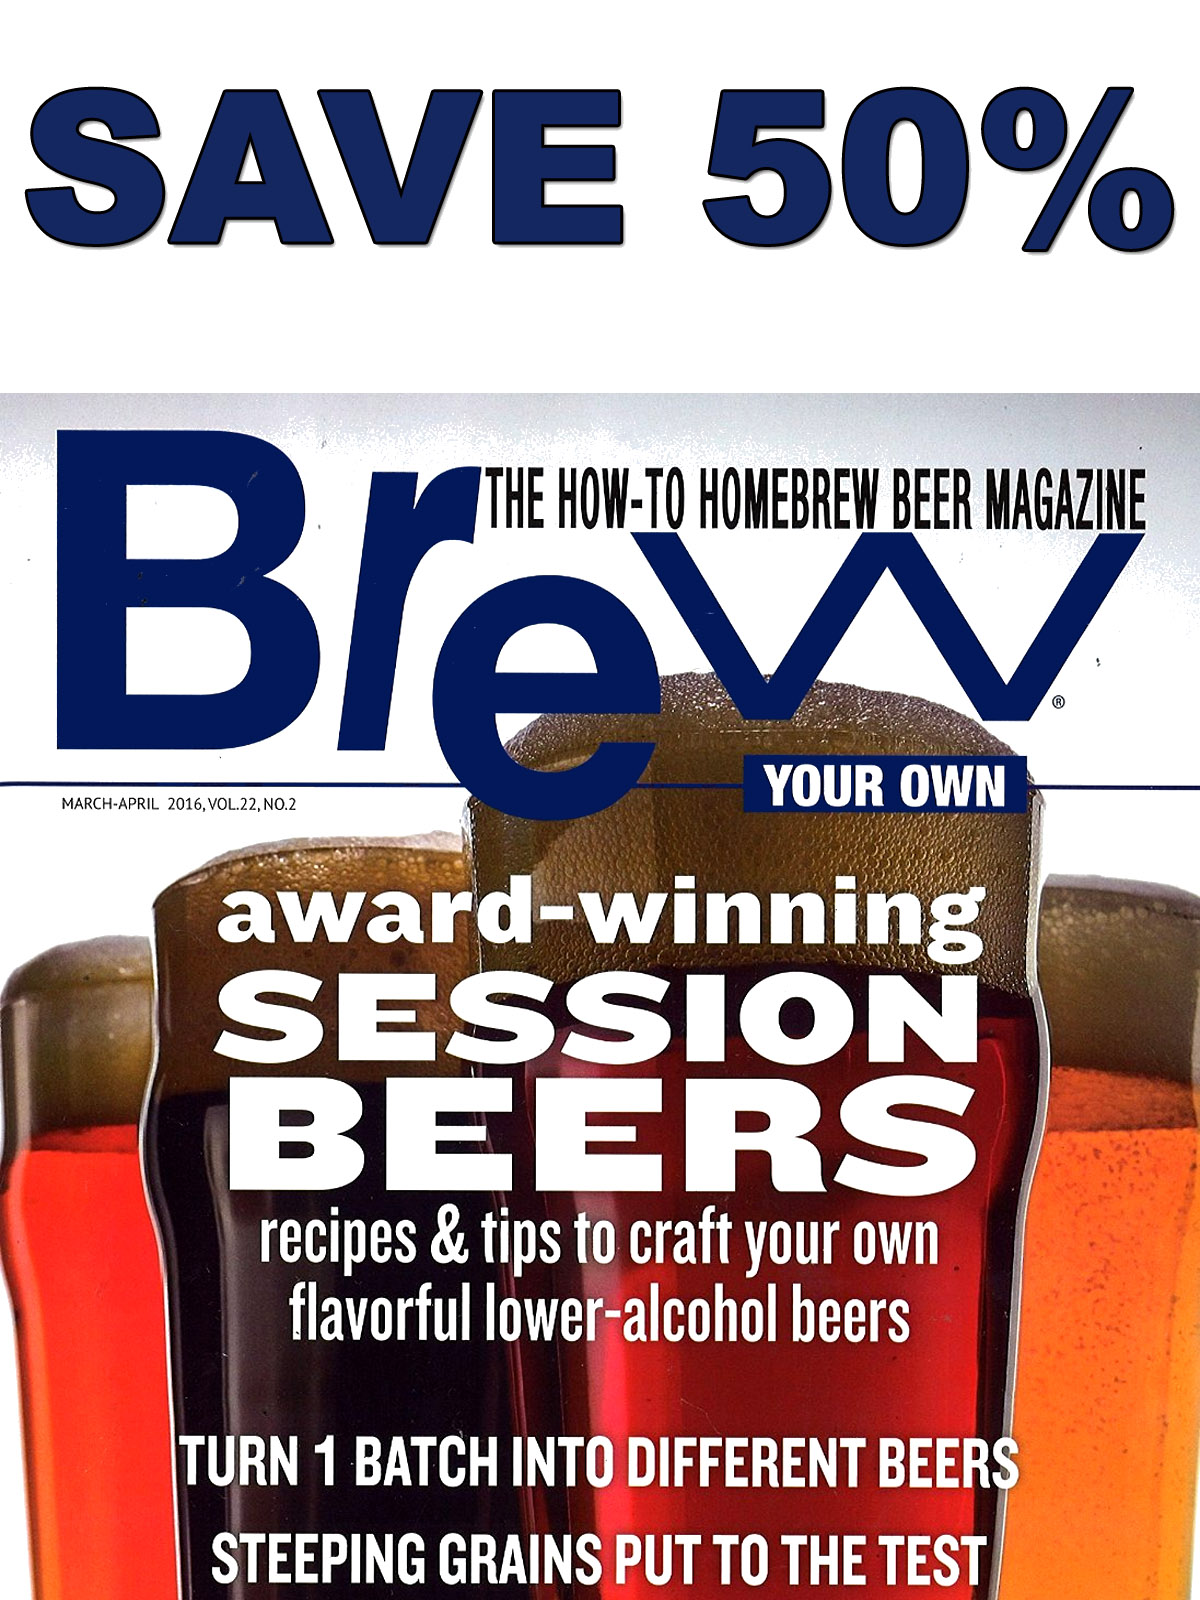 Save 50 on a subscription to brew your own homebrewing for Style at home subscription deal